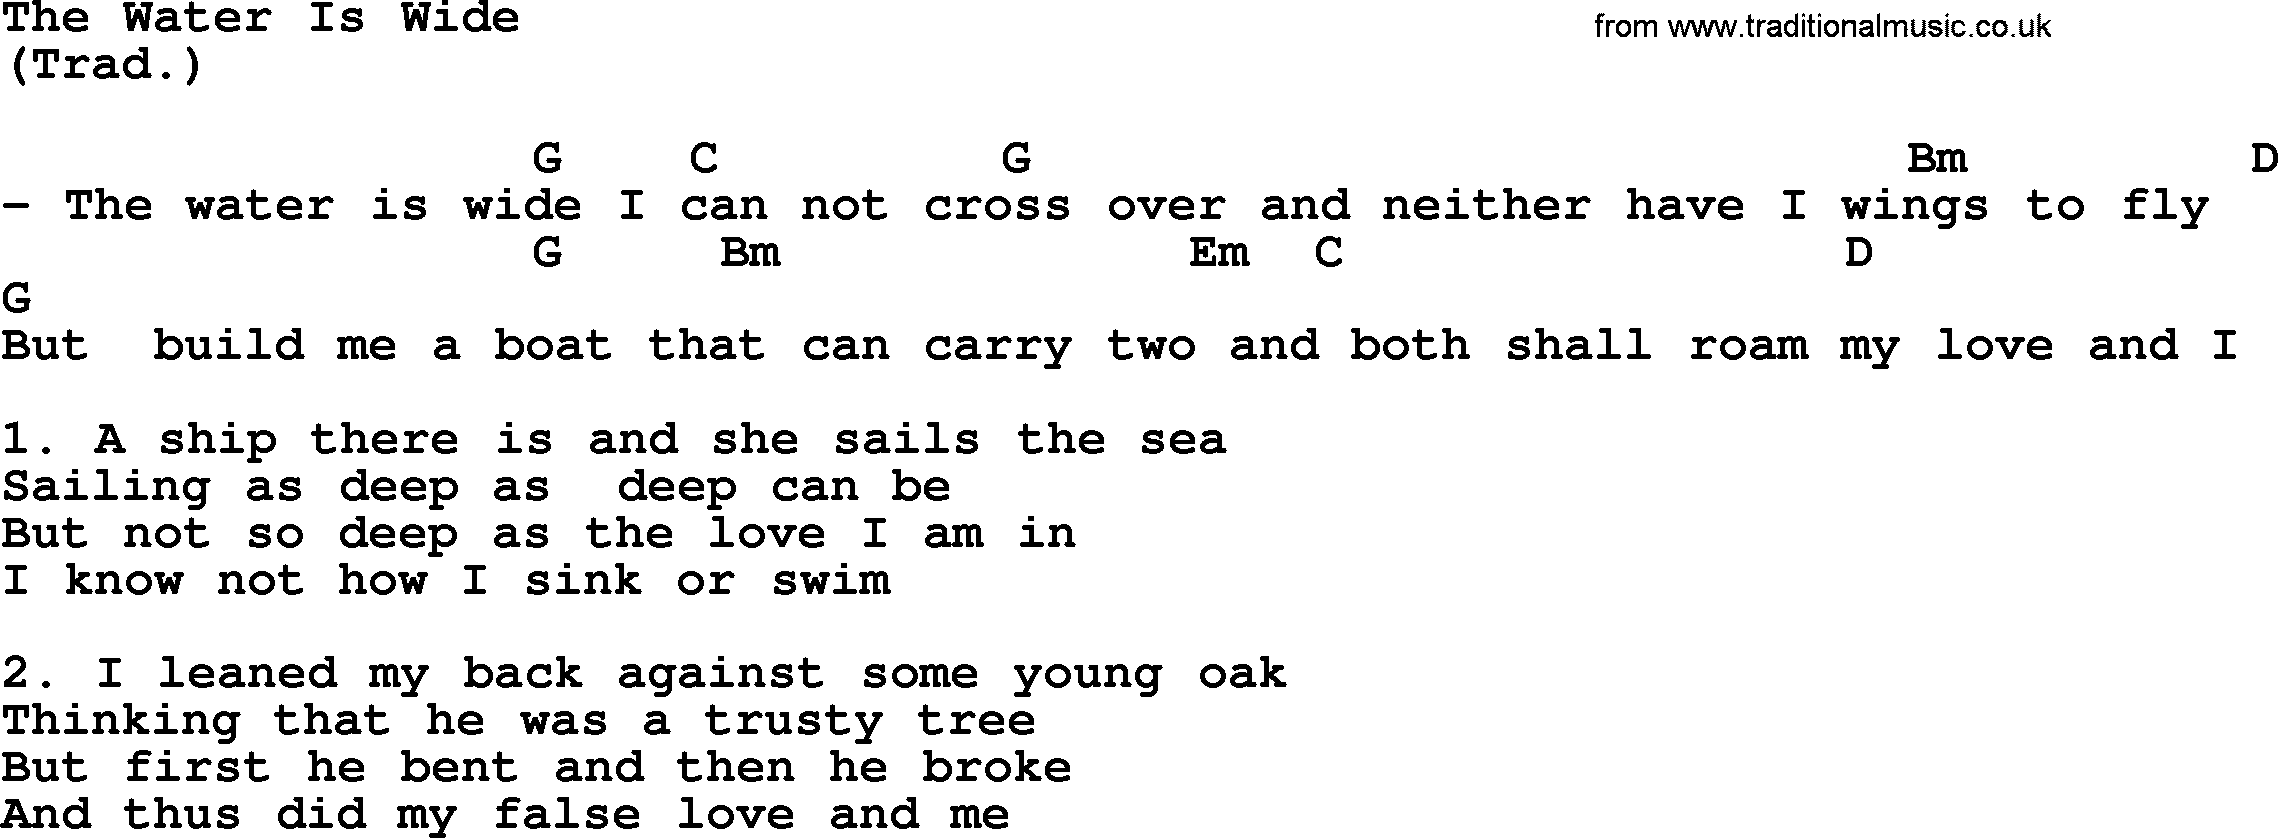 The Water Is Wide By The Byrds Lyrics And Chords